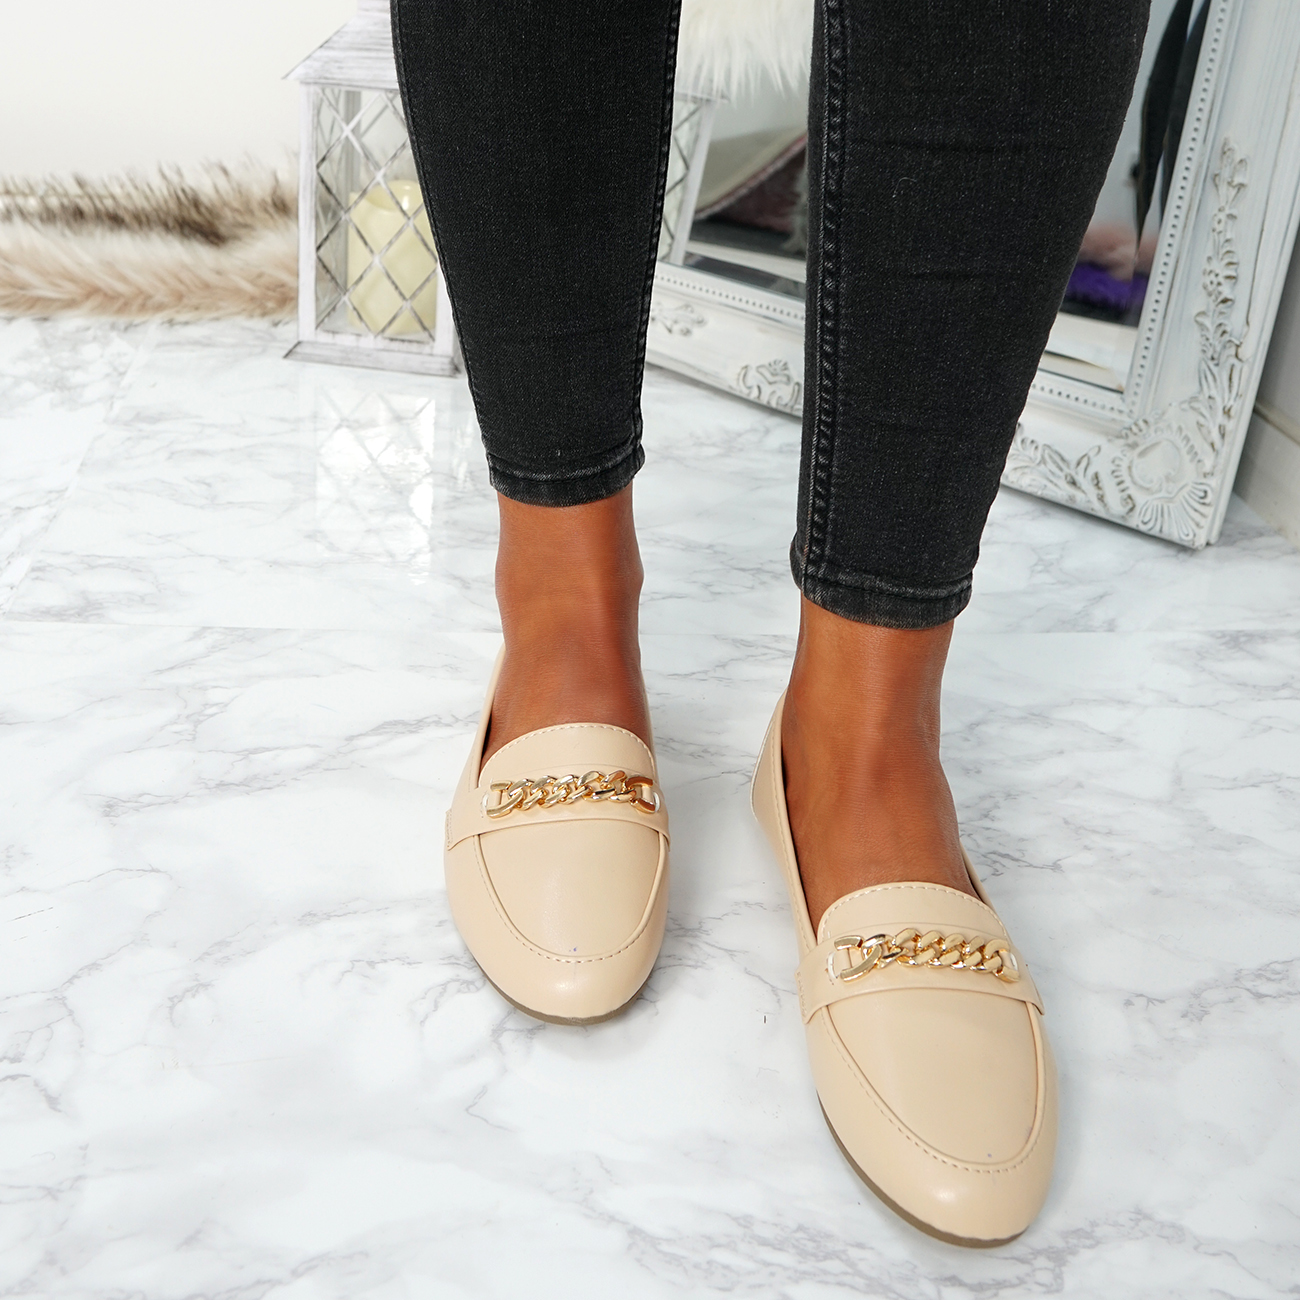 WOMENS-LADIES-CHAIN-SLIP-ON-BALLERINA-LOAFERS-BALLET-DOLLY-PUMPS-SHOES-SIZE thumbnail 10